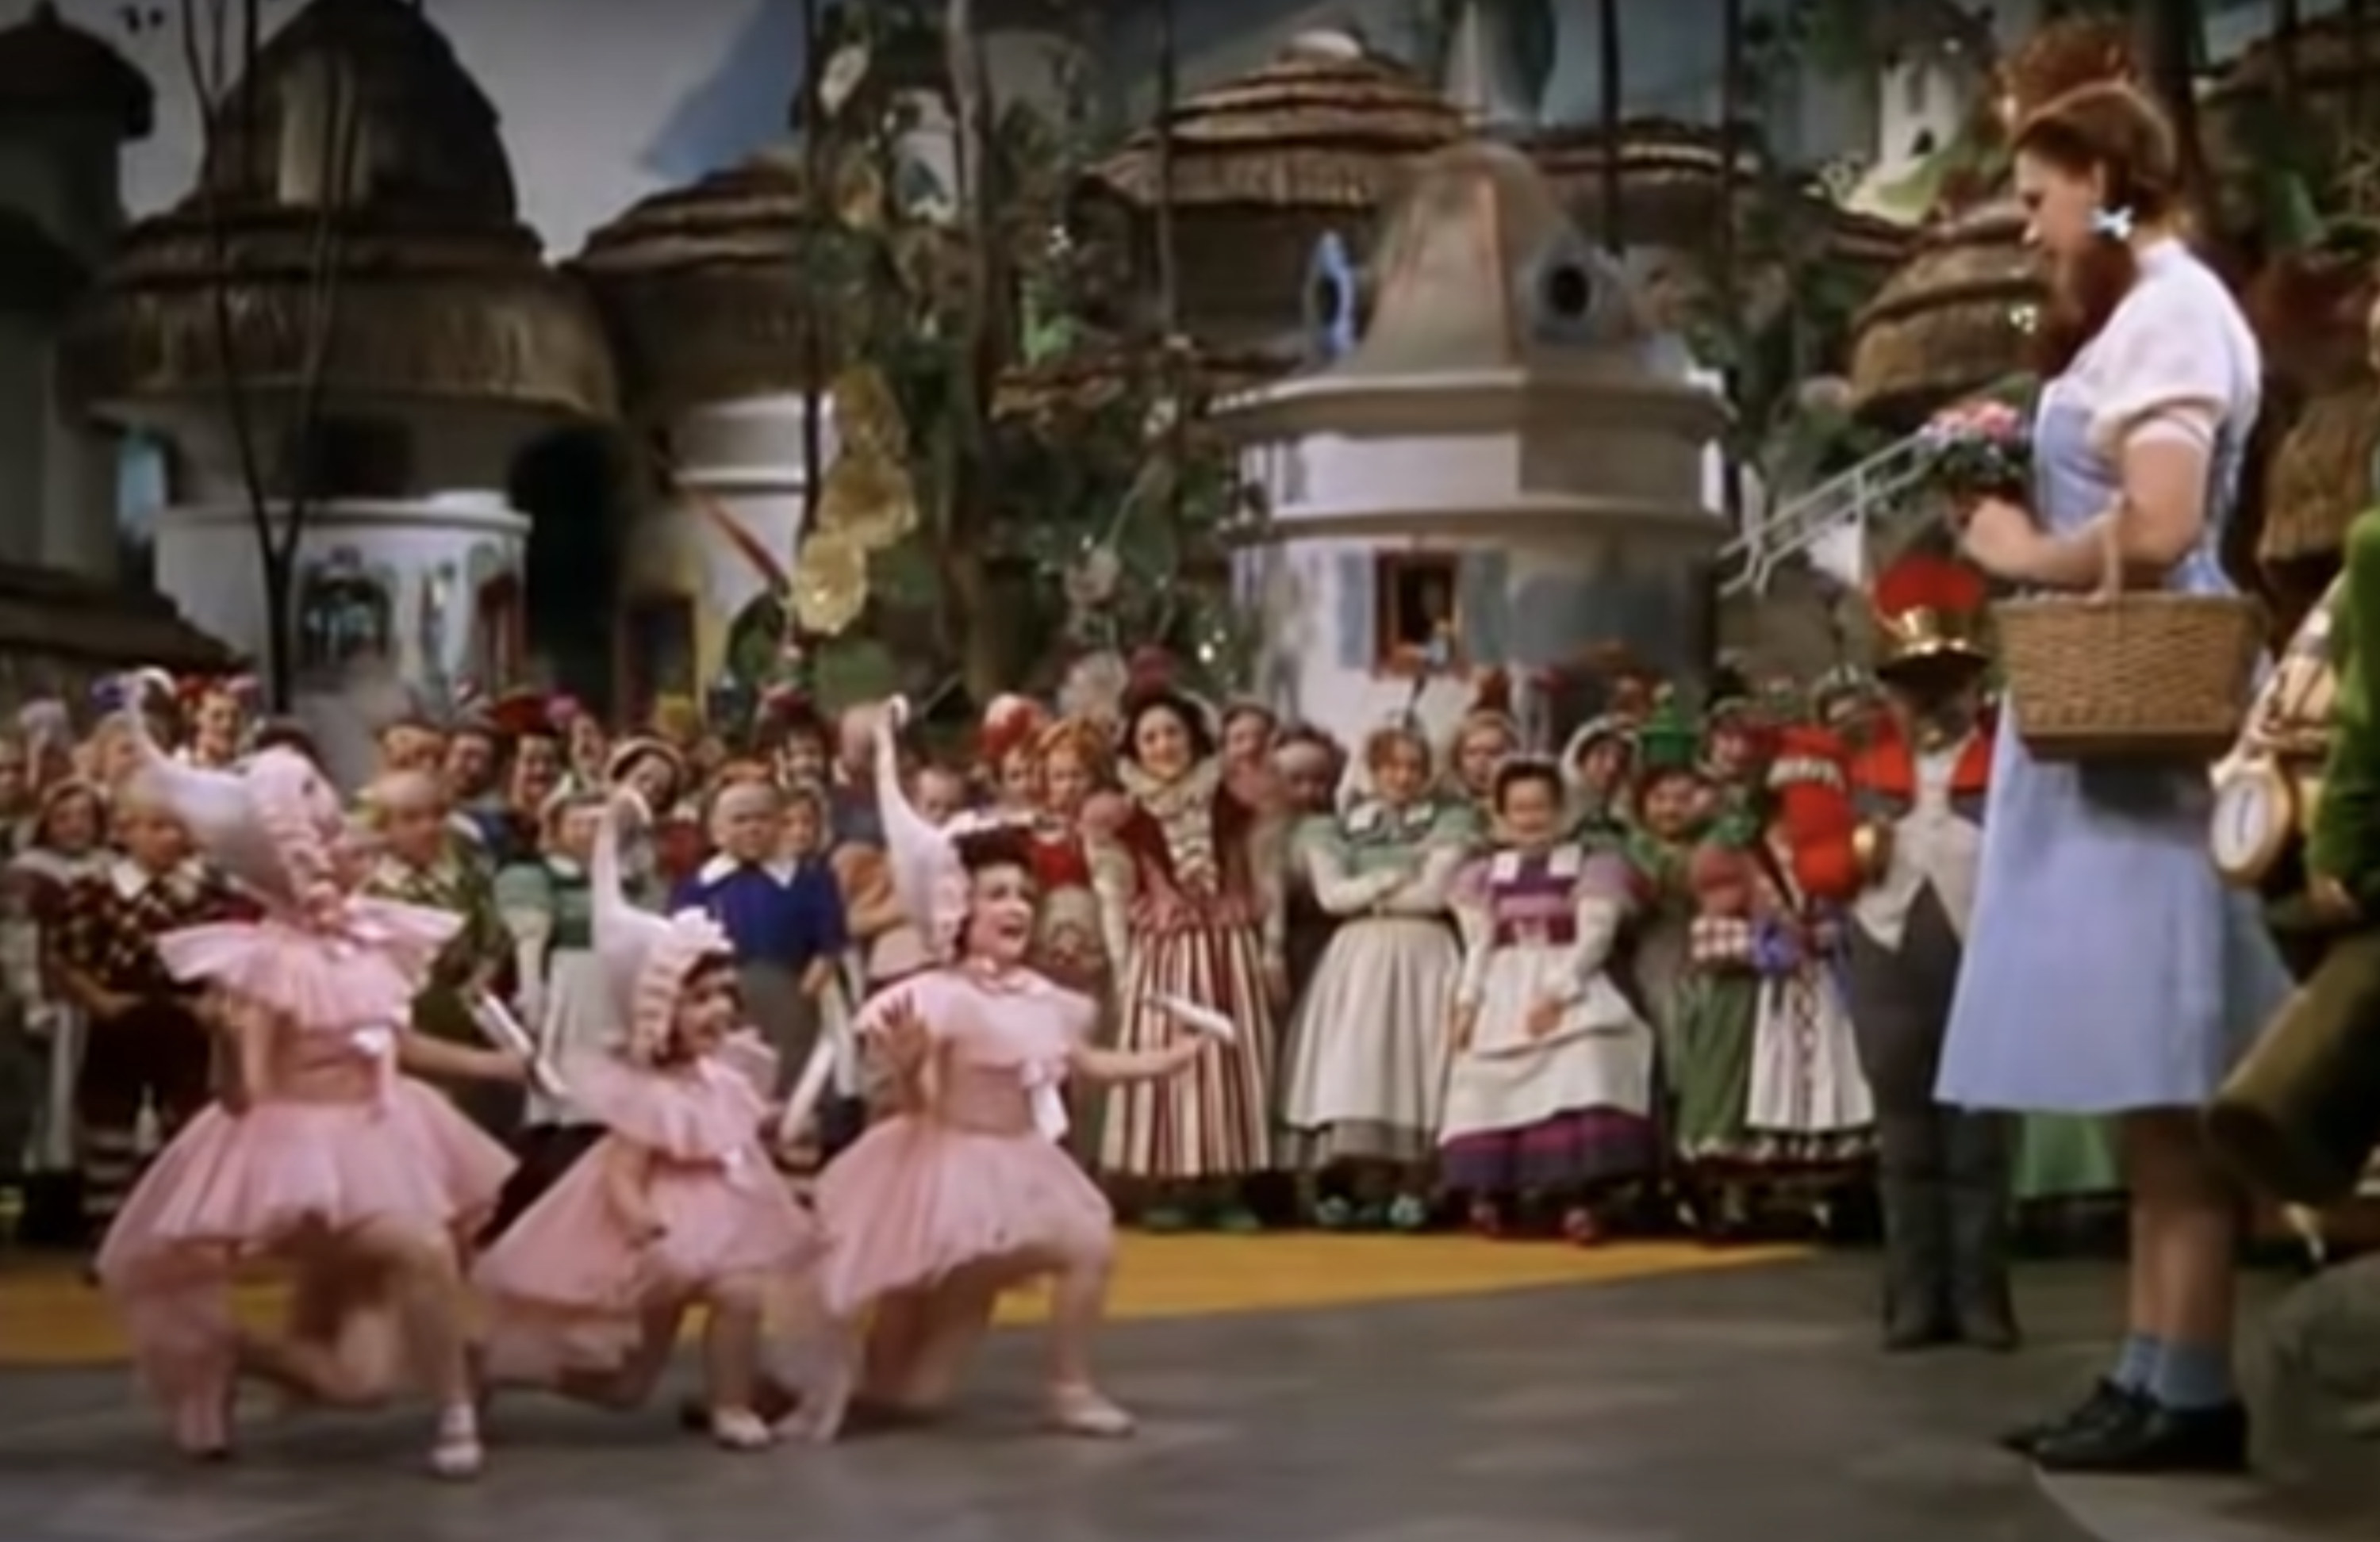 Judy Garland standing in Munchkinland with the ballerinas